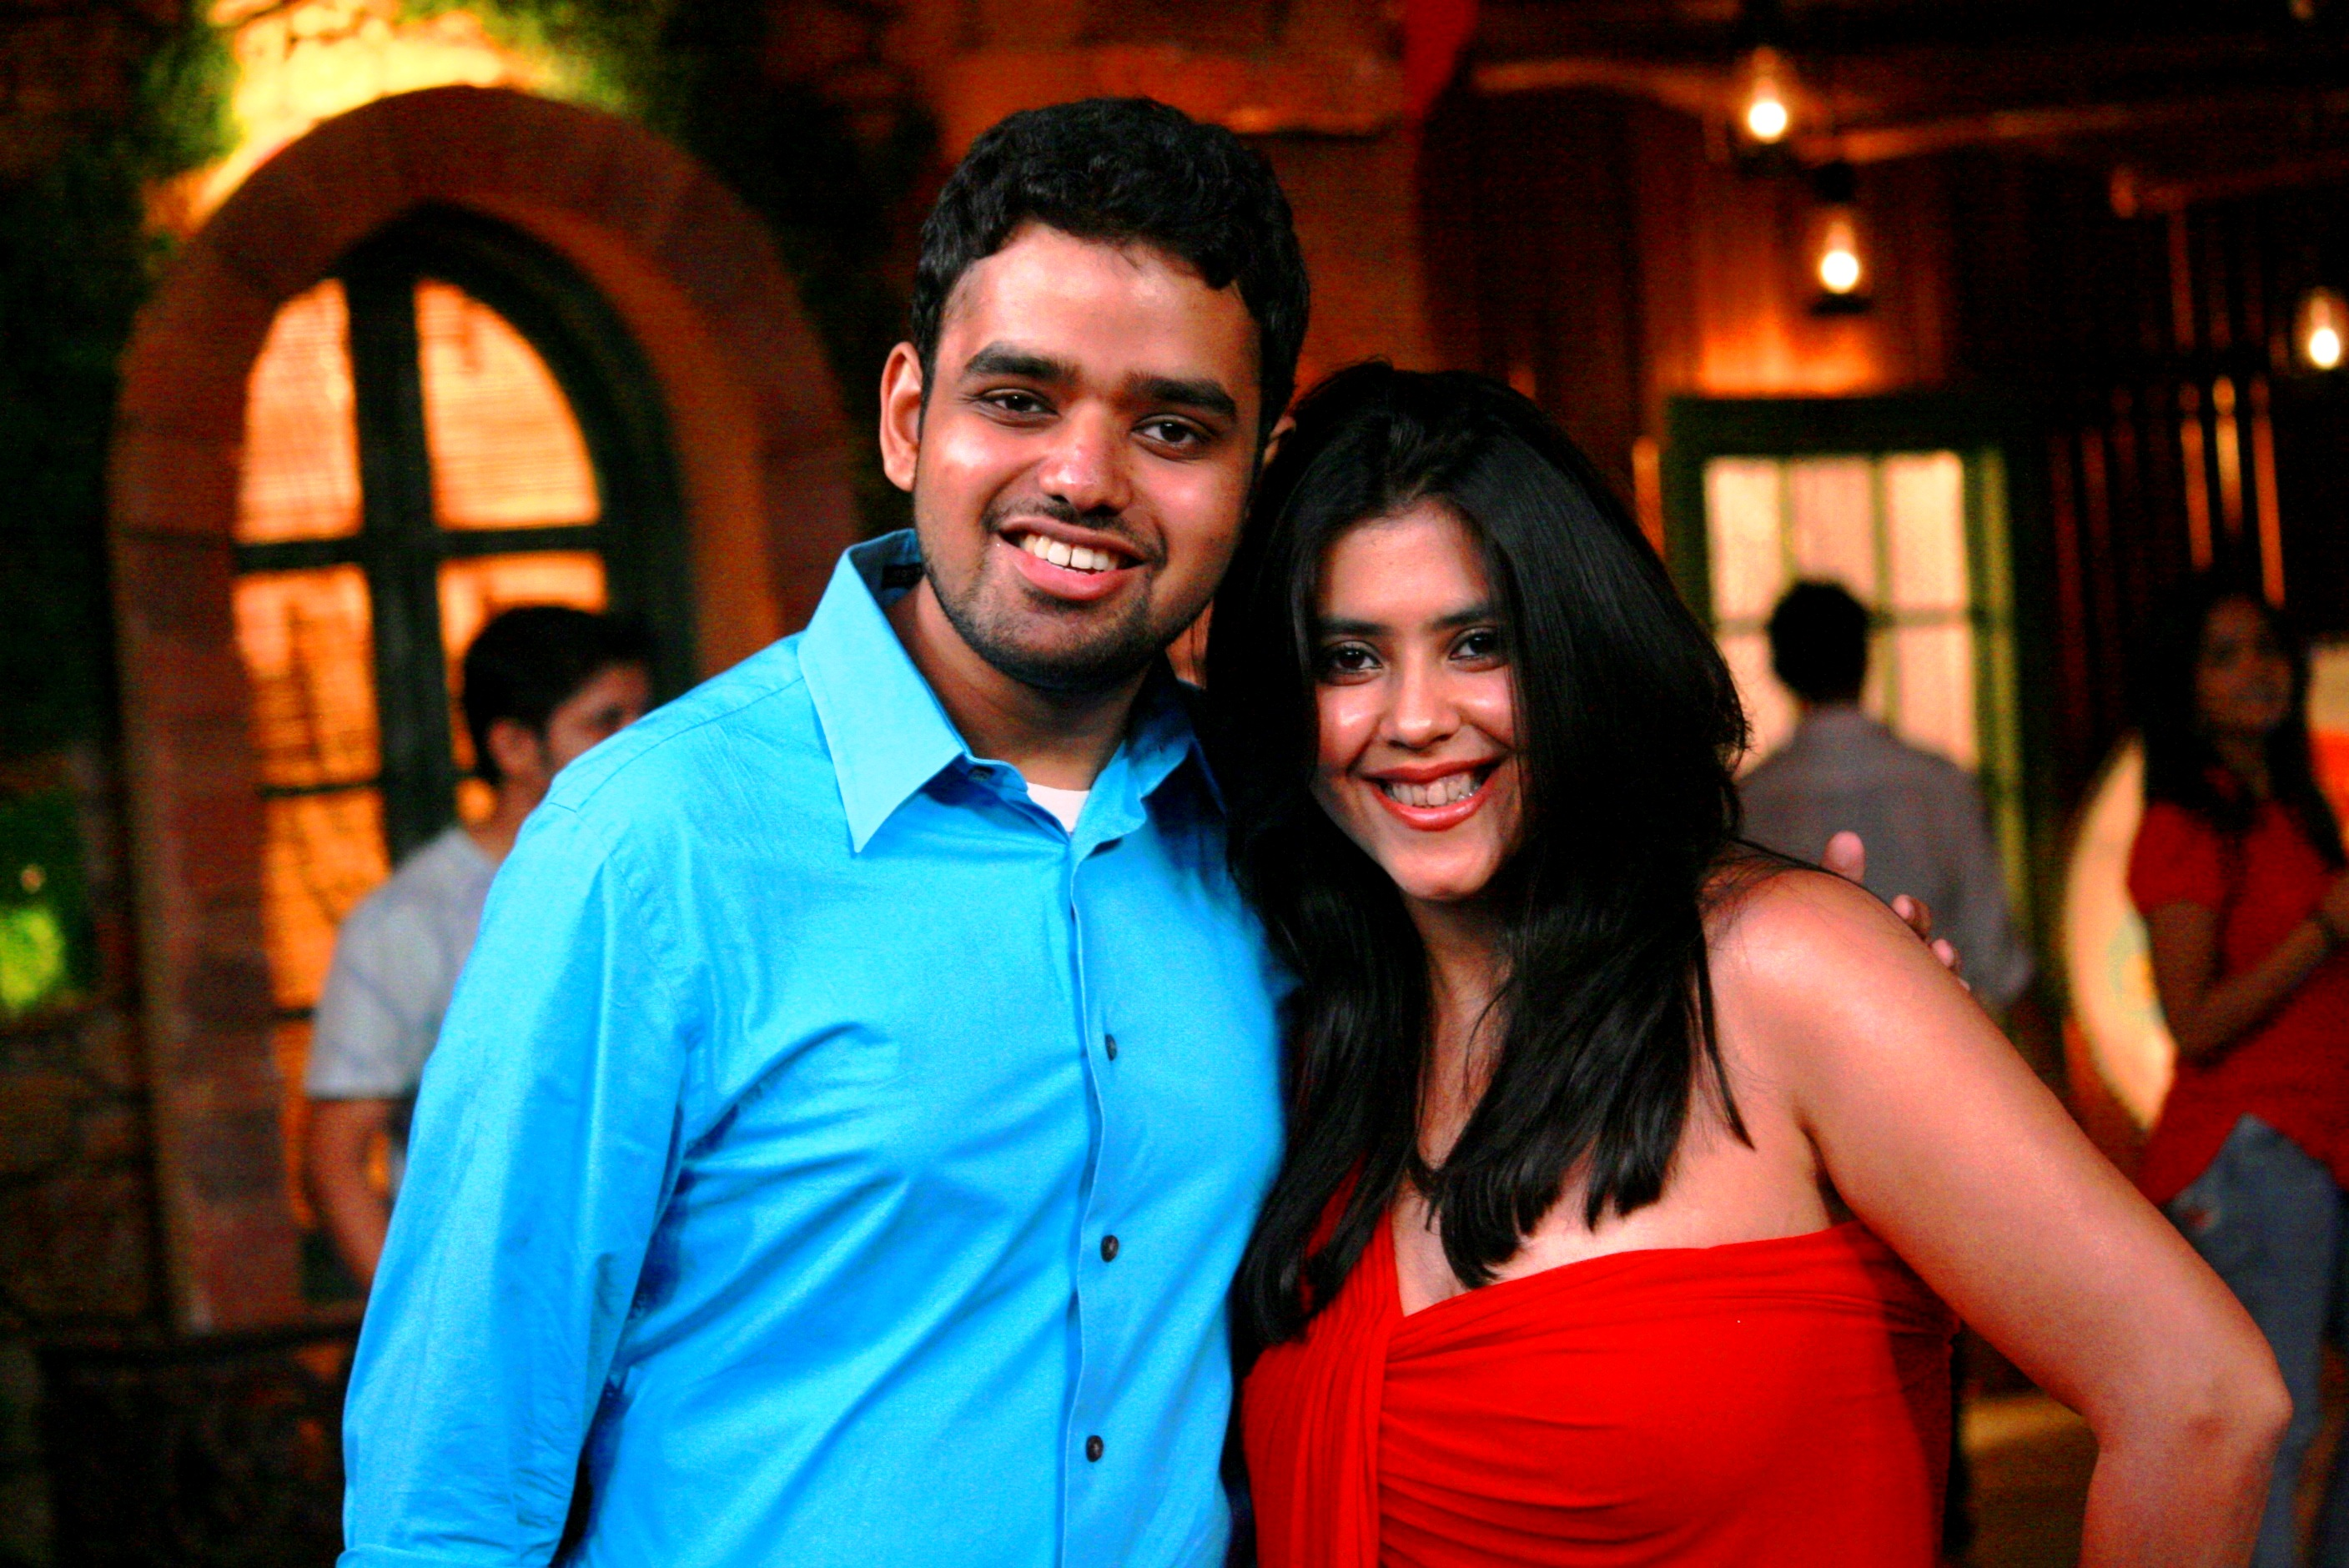 Kovid Gupta with Ekta Kapoor Joint Managing Director and Creative Director of Balaji Telefilms Photo courtesy: Kovid Gupta